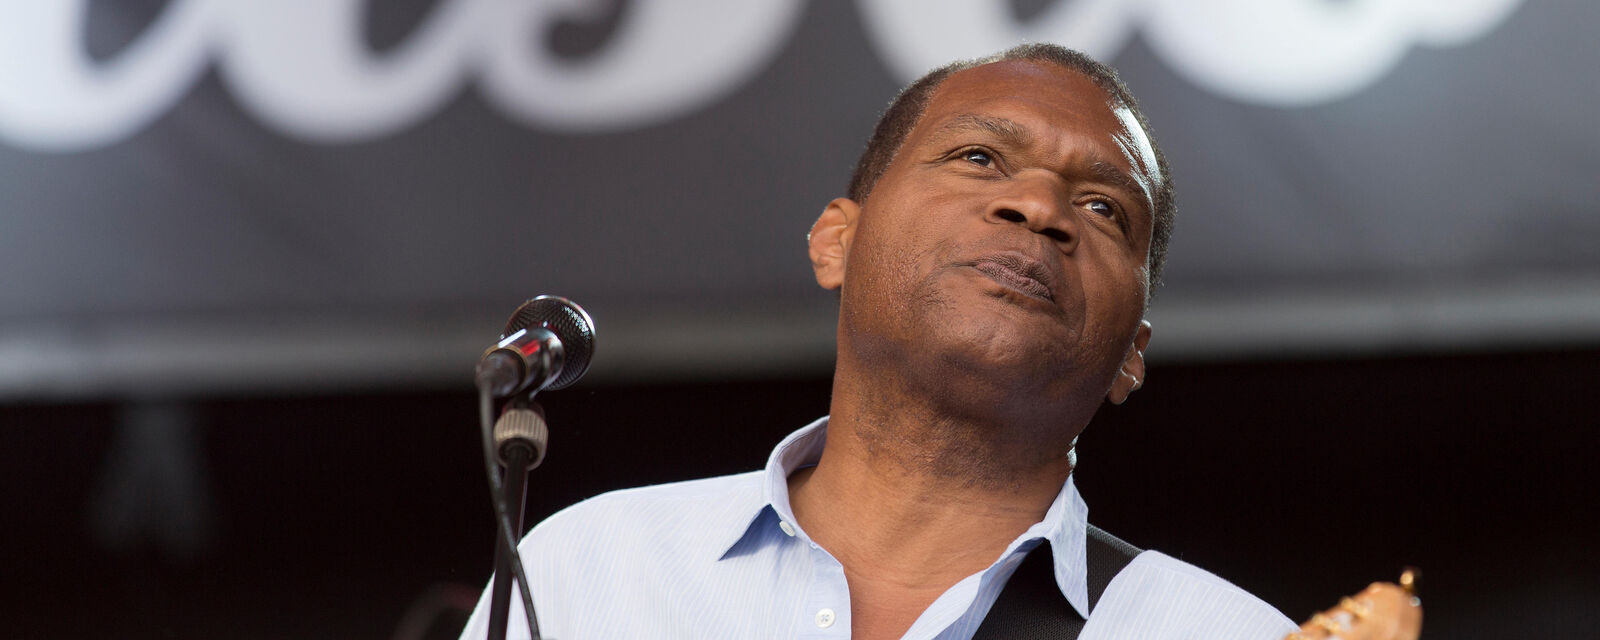 Robert Cray Band Tickets (21+ Event)